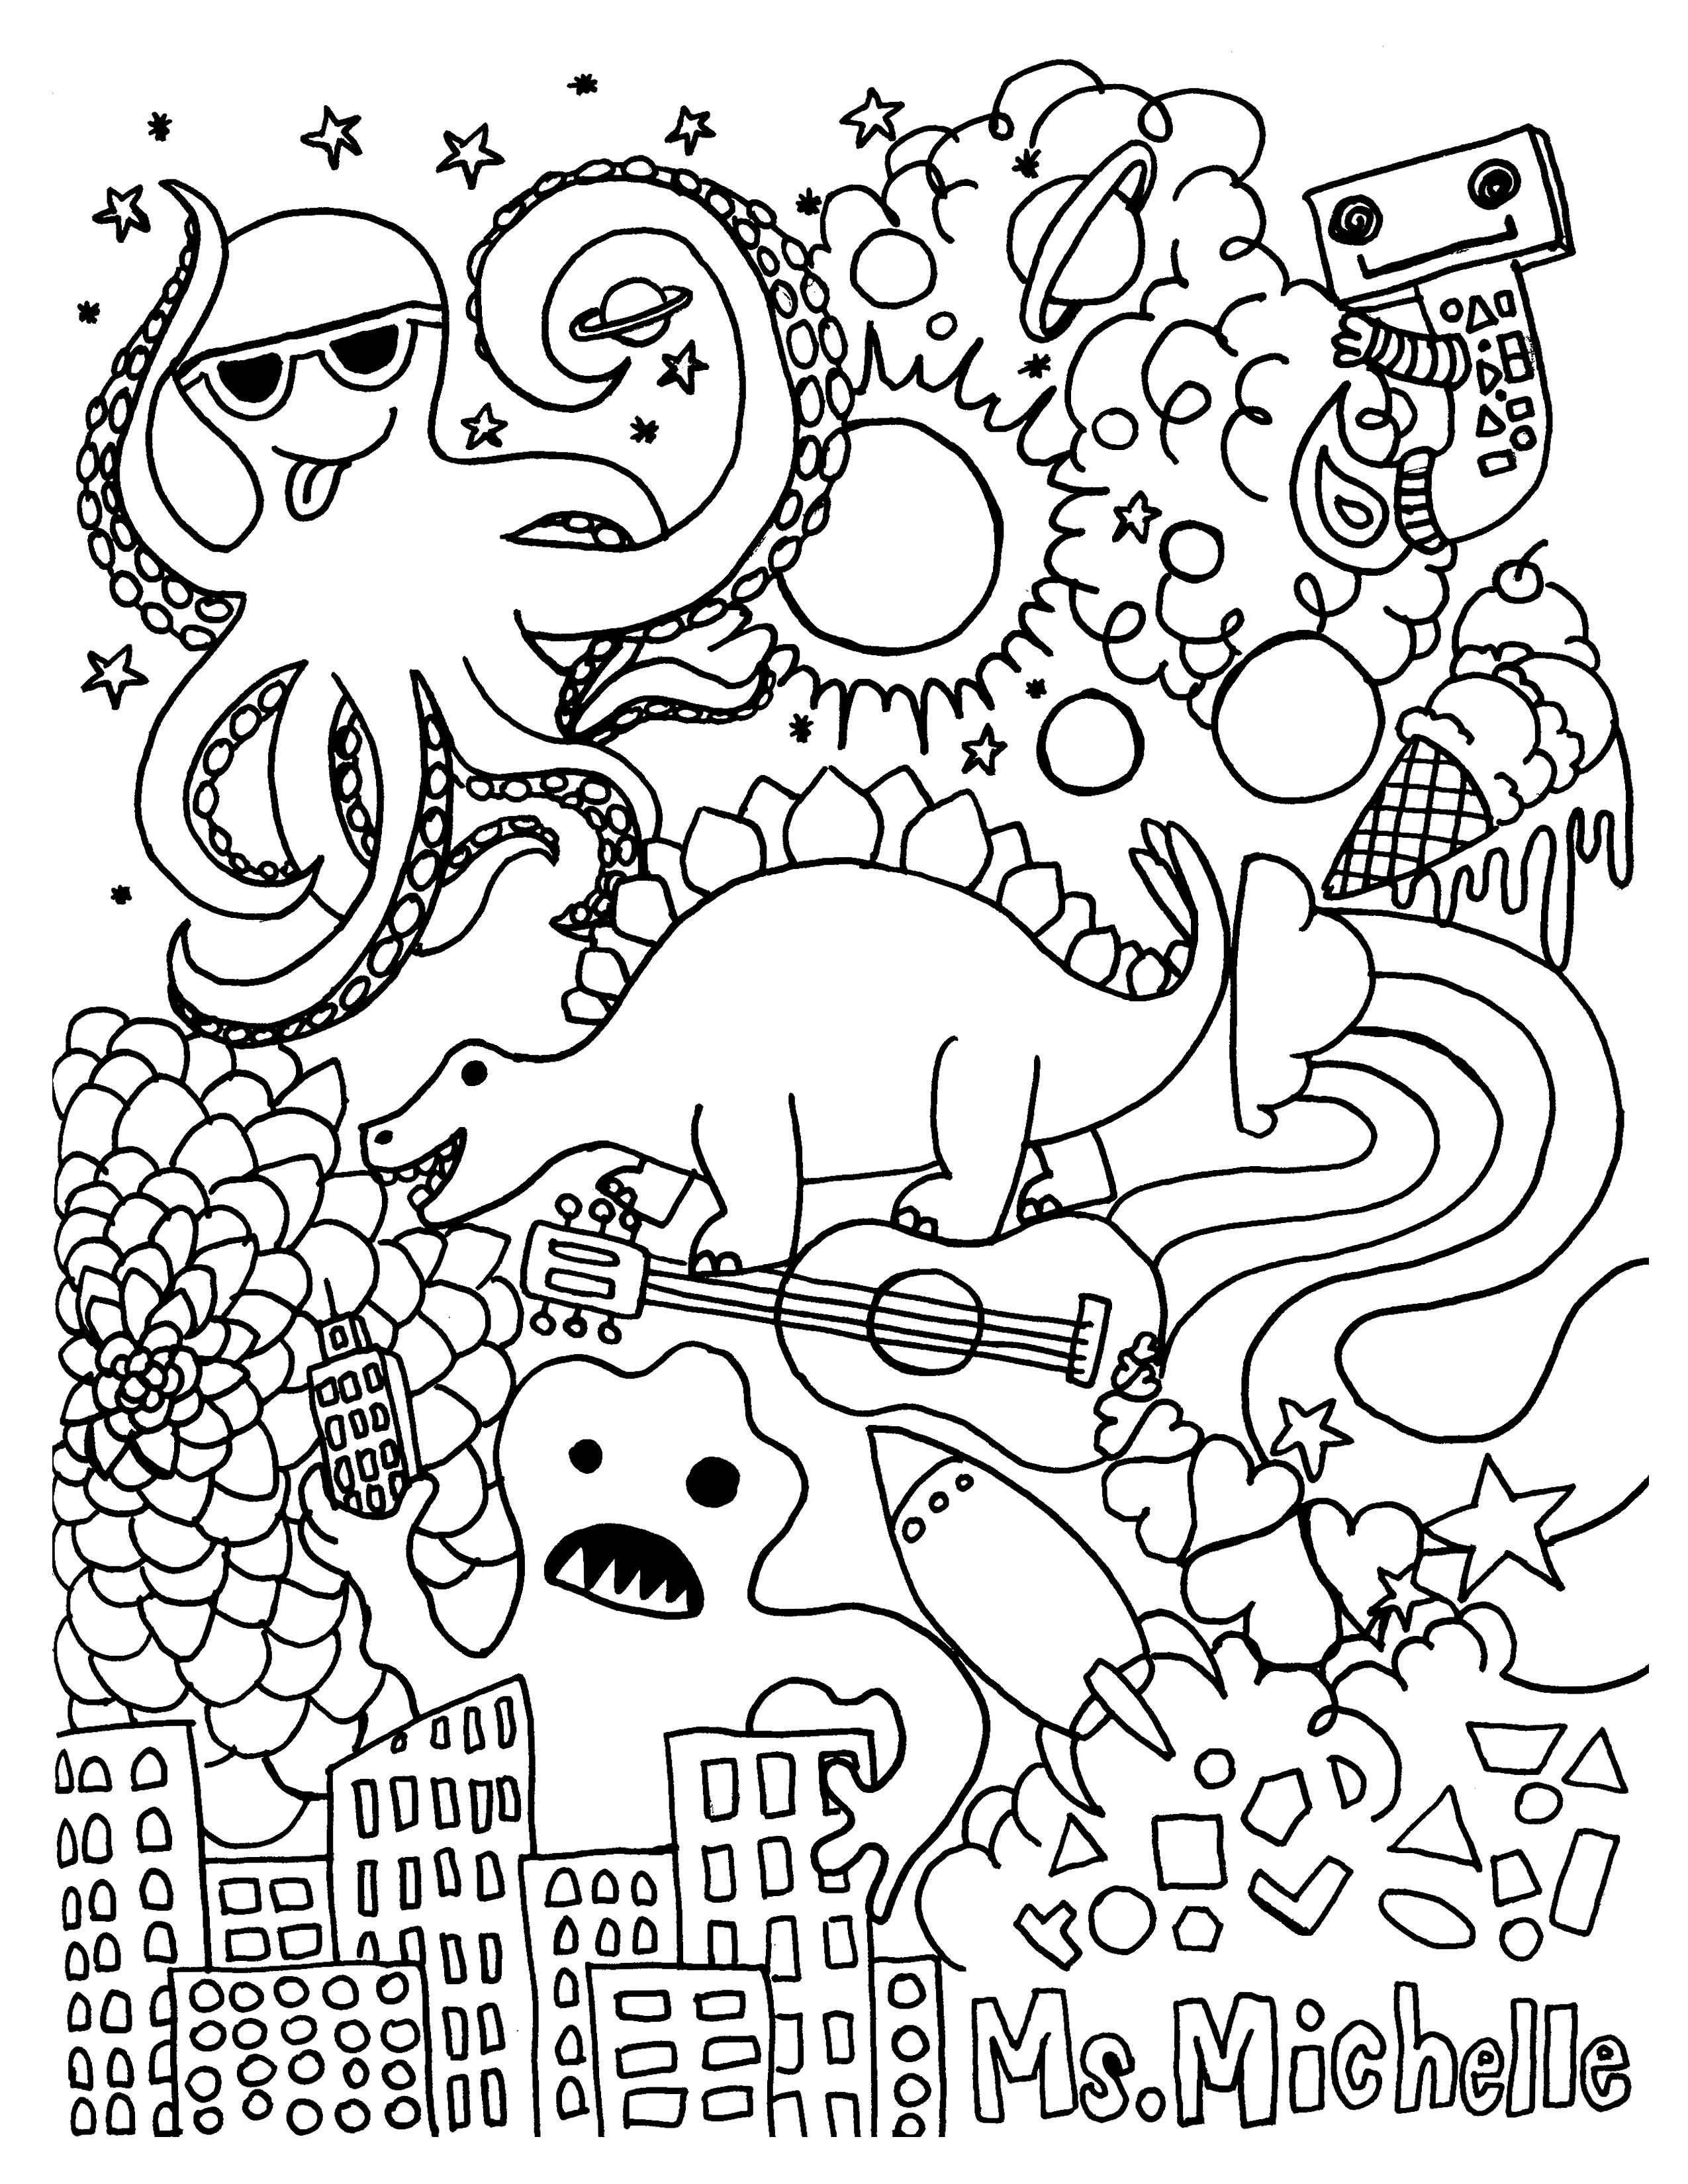 Christmas Colouring Pages Year 1 With Coloring Educationcom Printable Educations For Kids